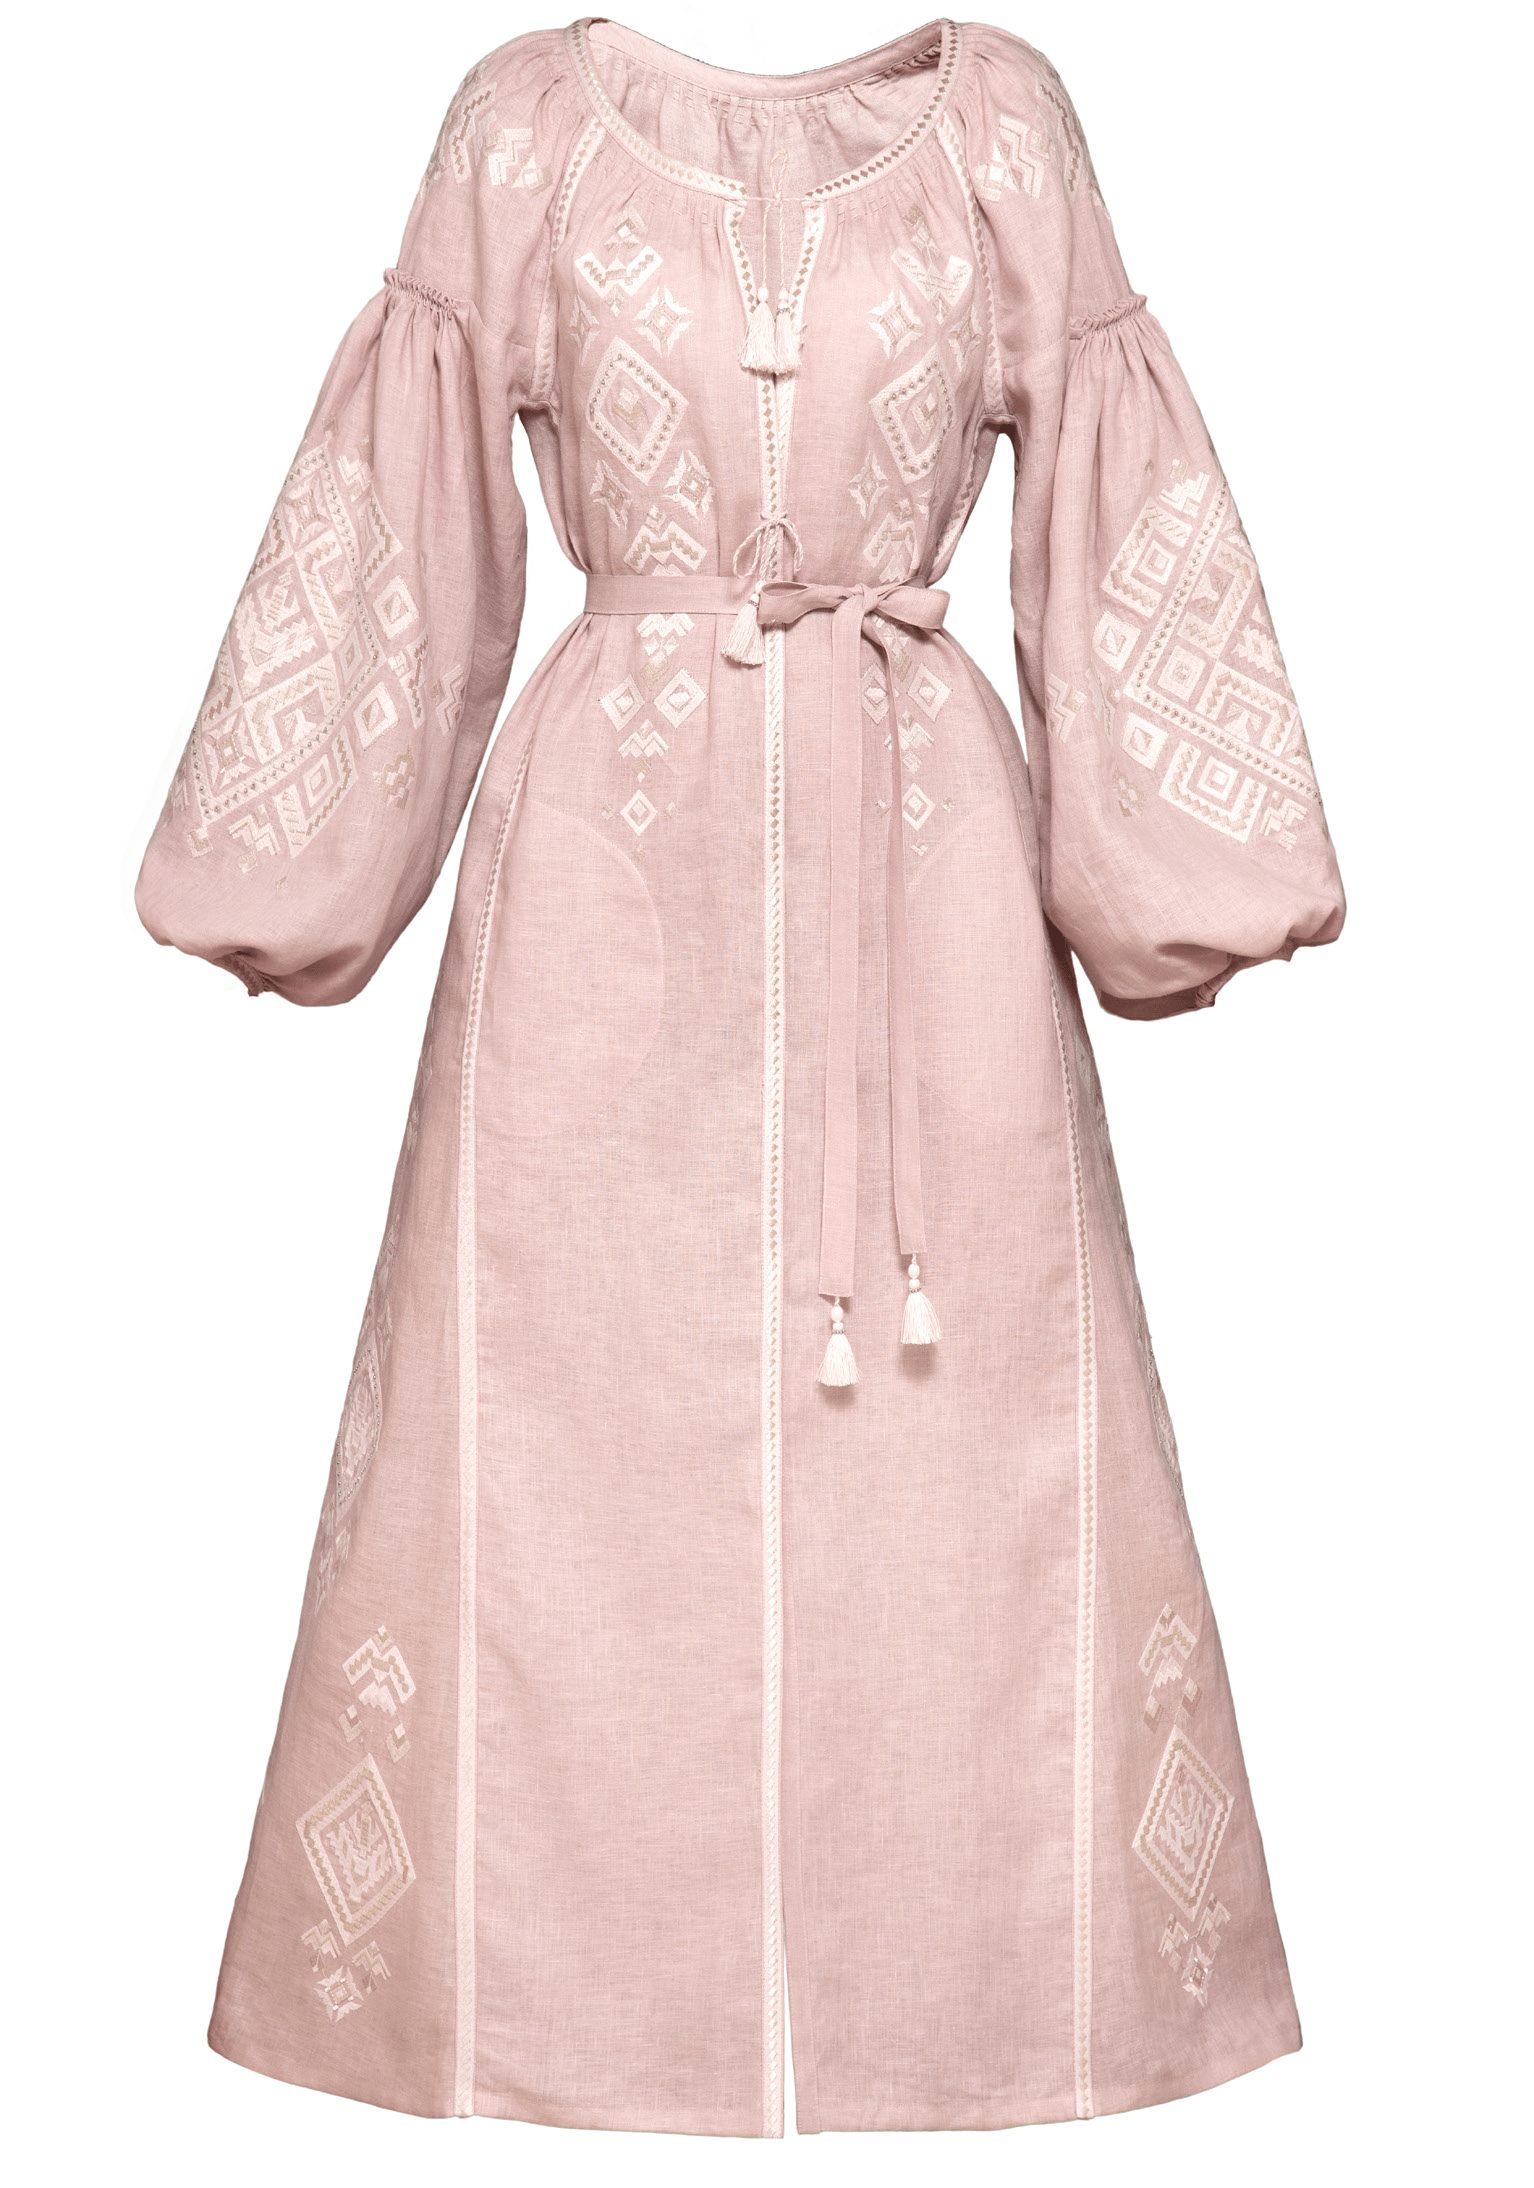 Powder pink midi dress - My Sleeping Gypsy